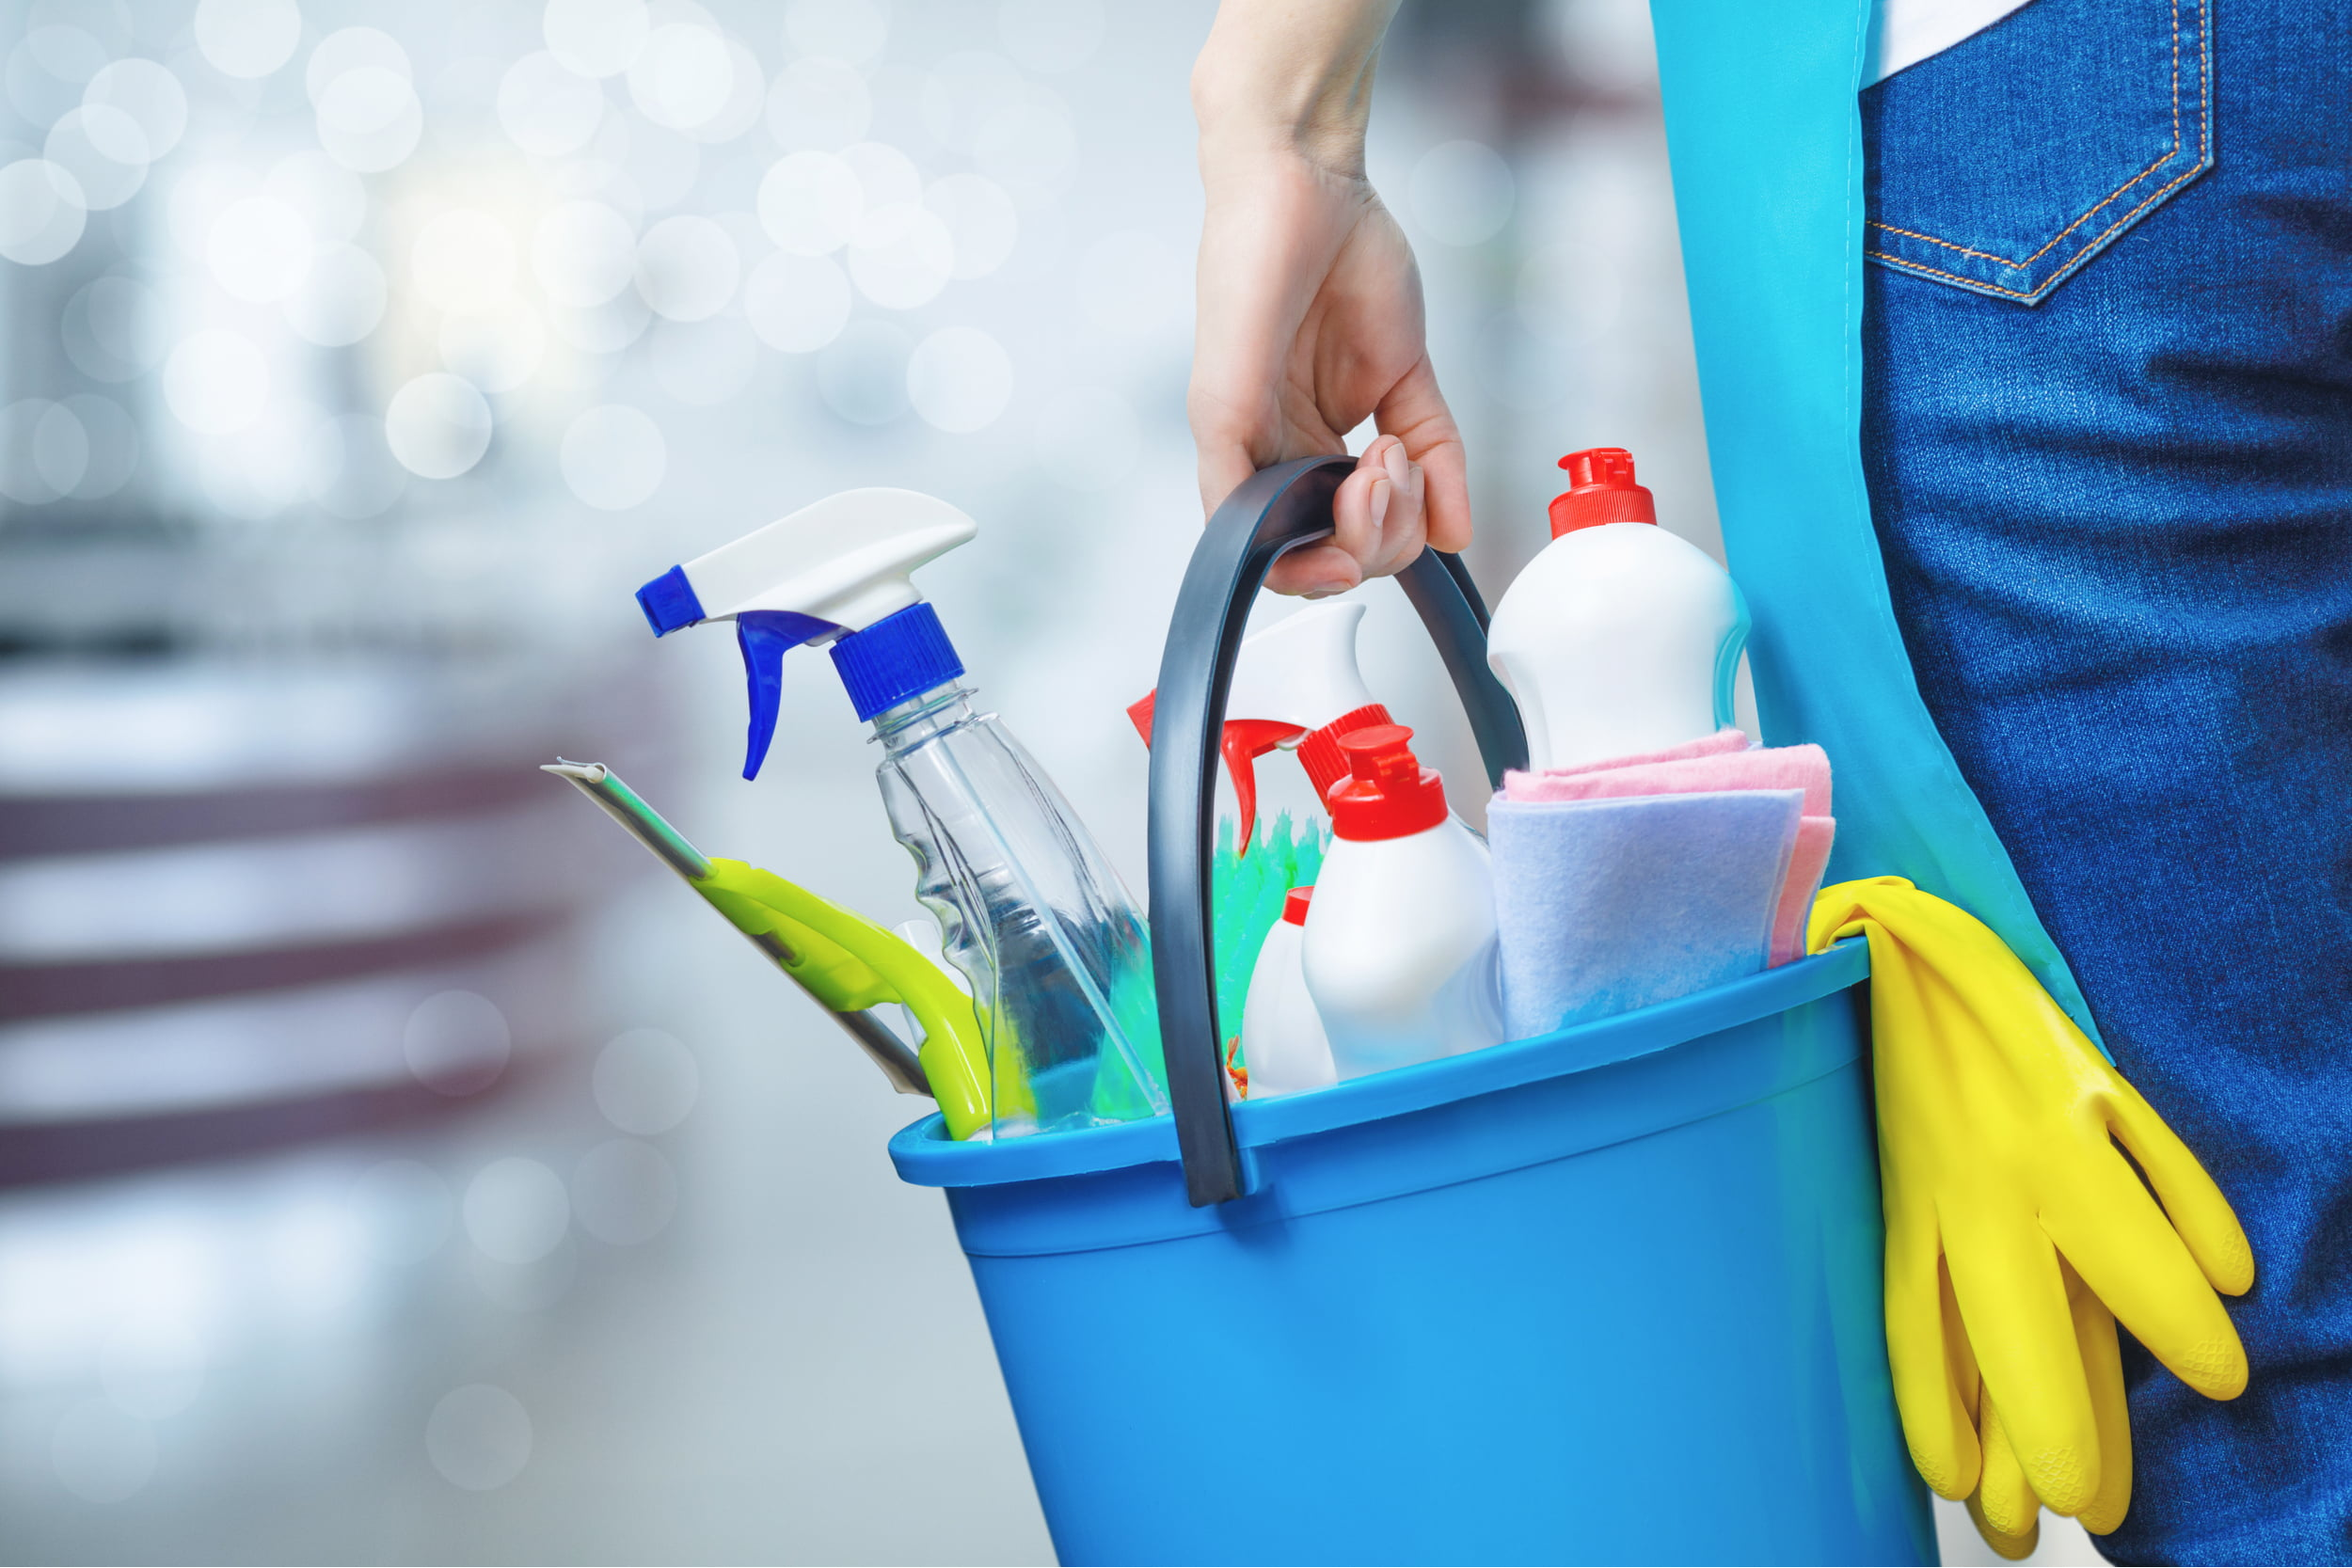 Bucket with cleaning products: spray bottle and sponges. Star Clean Ltd, Cleaning, Cleaners, Commercial Cleaners, Domestic Cleaners. Bath, Bristol